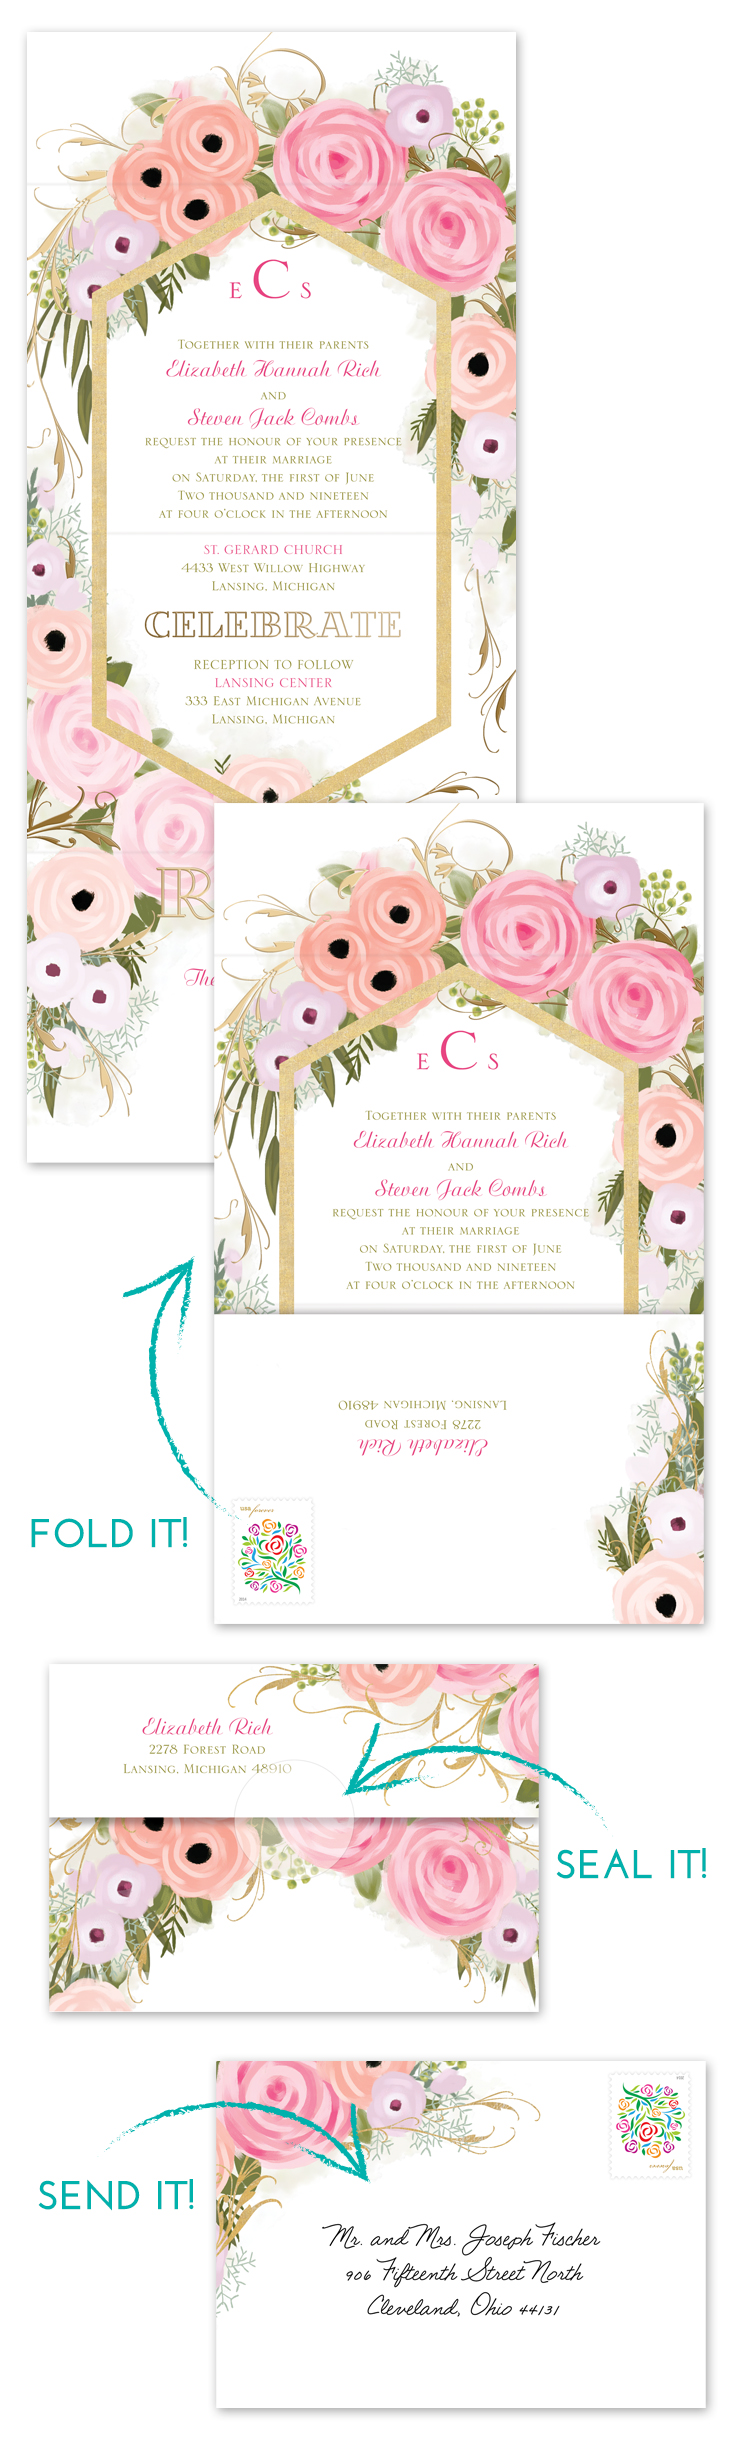 No assembly party necessary! This smart design combines your wedding ...